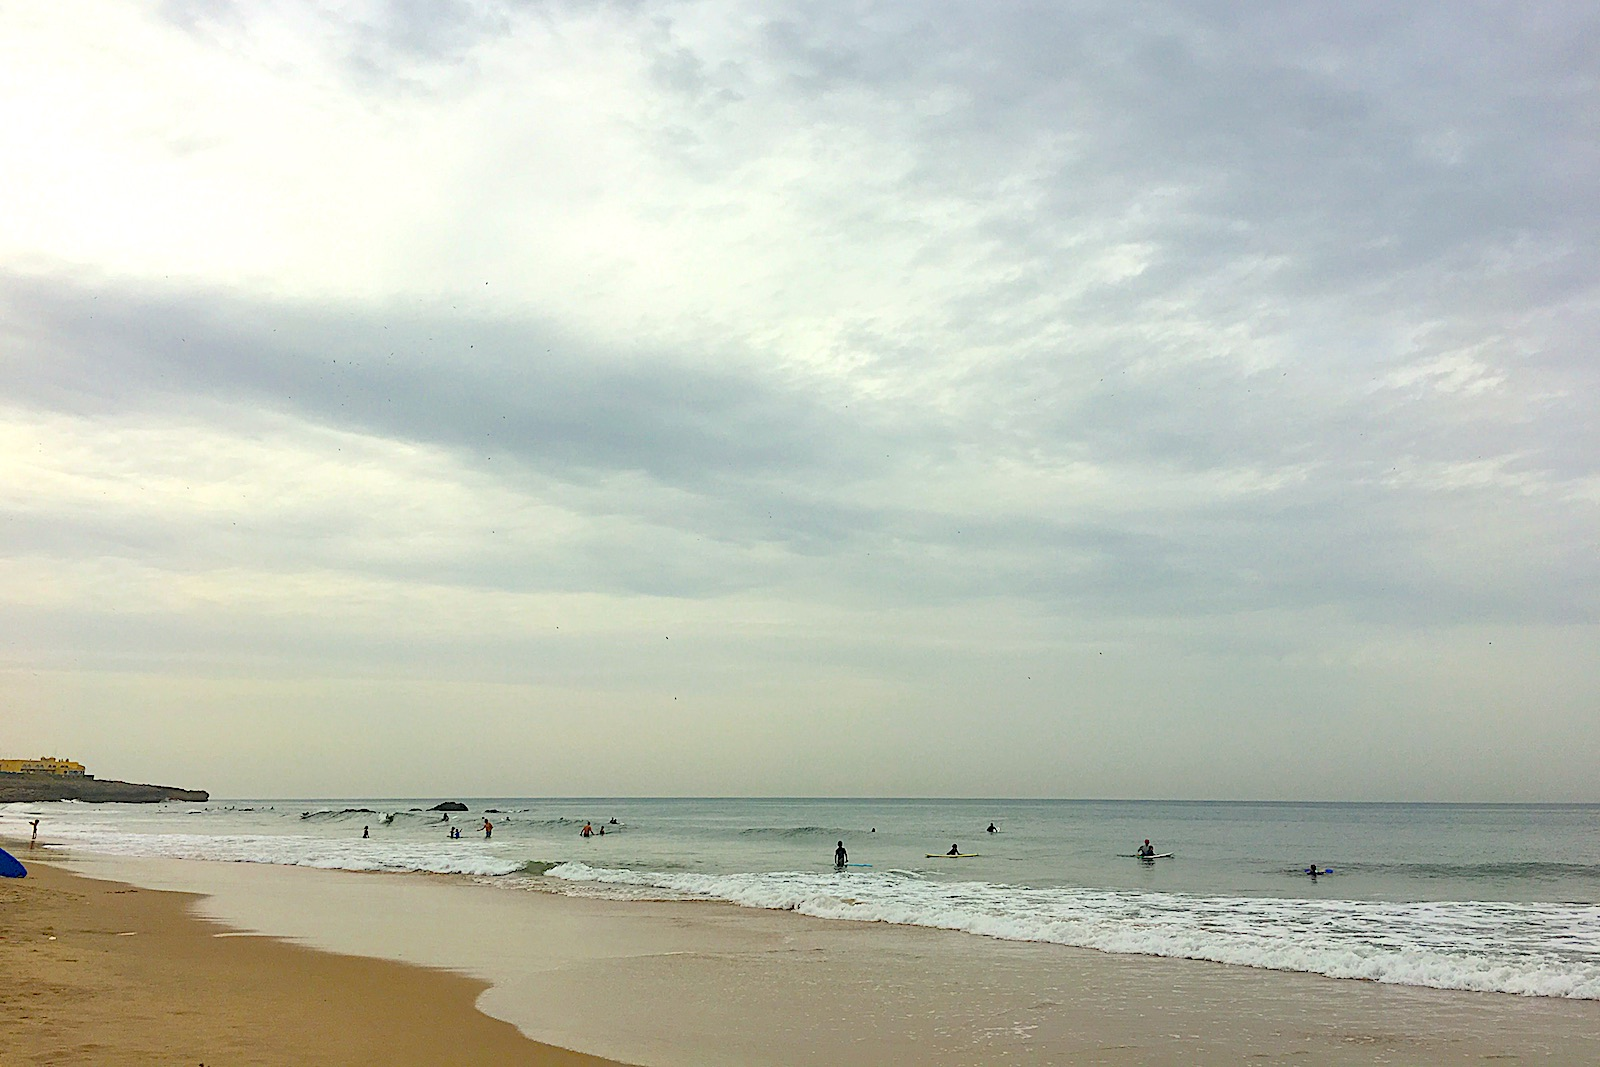 praia do guincho, surf school